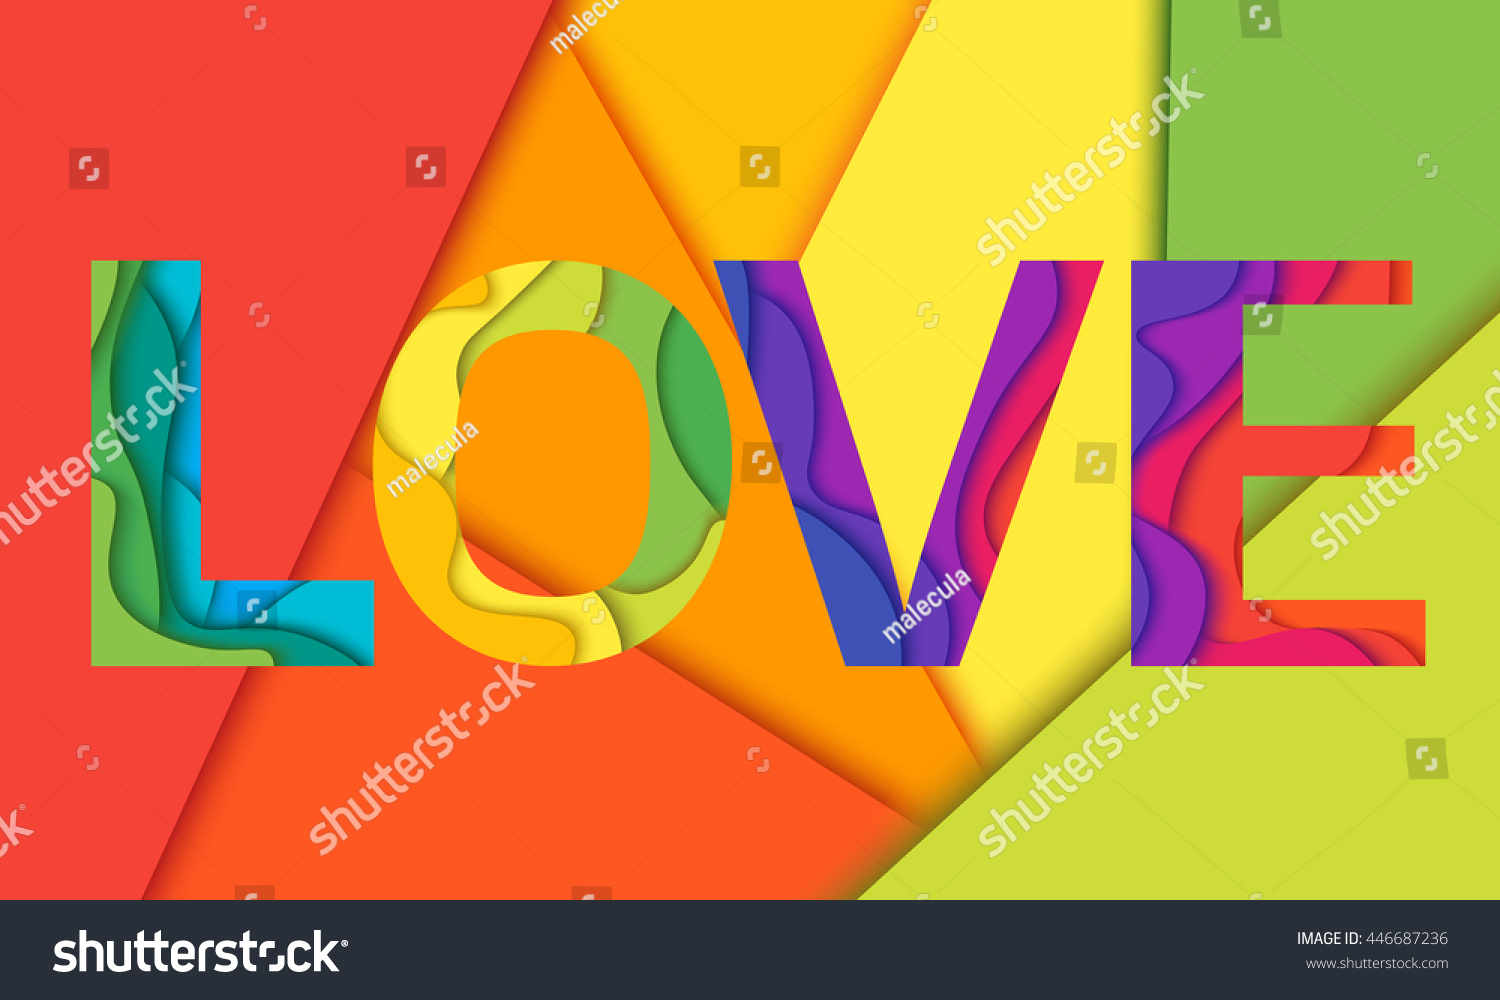 Love Word Mockup Print Colored Graphic Layered Design For T Shirt Or Poster